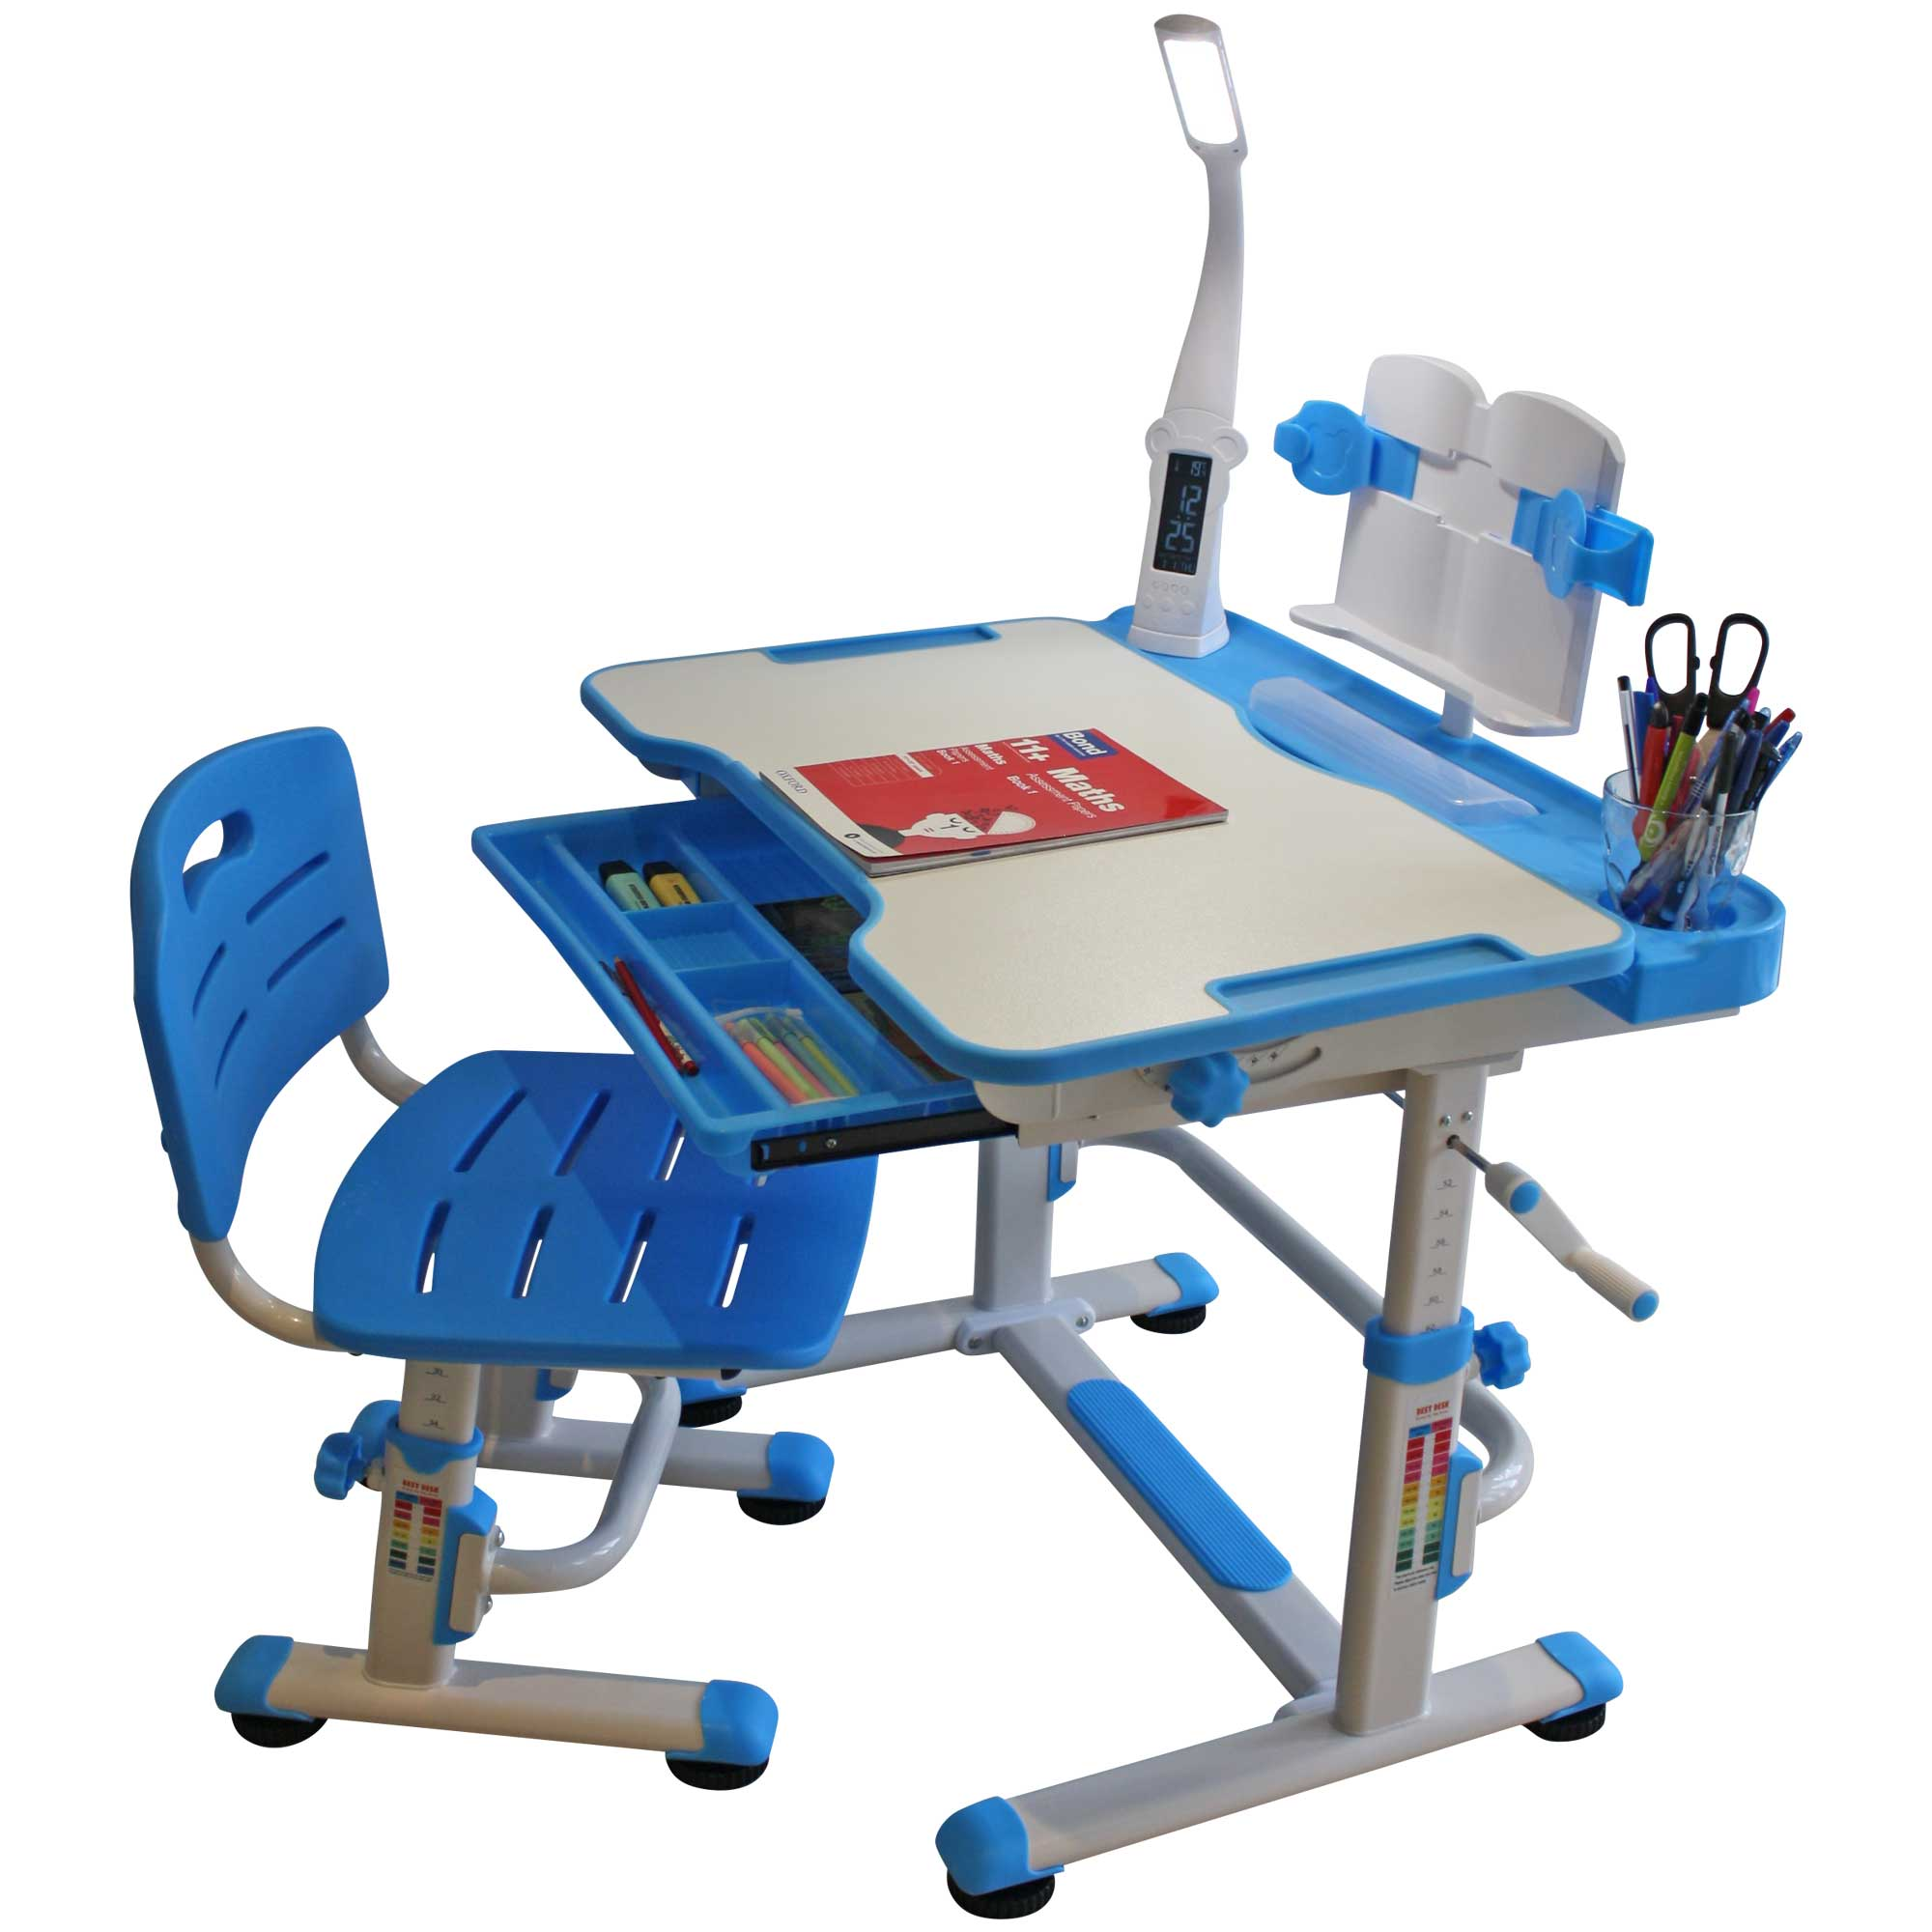 height-adjustable-kids-desk-chair-study-table-sprite-blue-desk-2019-design-06